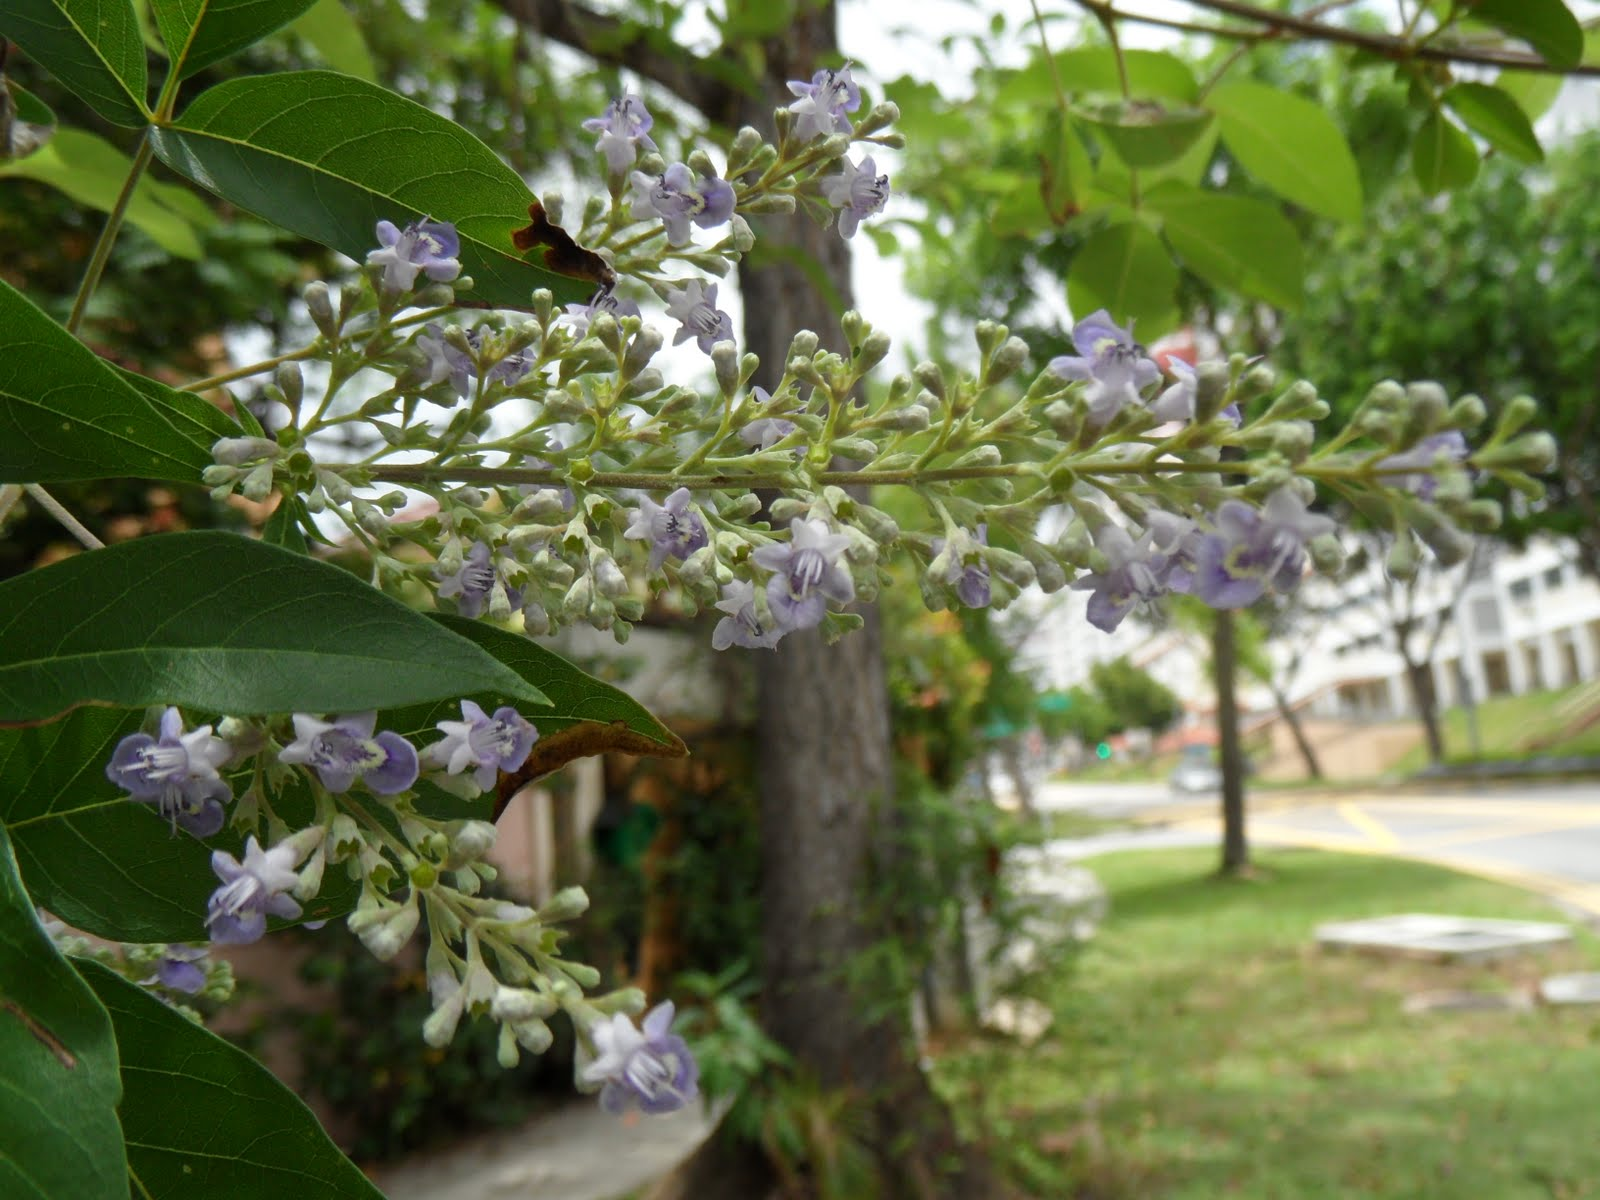 phytoremediation of vitex negundo plants Present study the selected plant vitex negundo linn, belongs to the family verbenaceae, which is known to possess  chemical and medicinal value of vitex negundo .